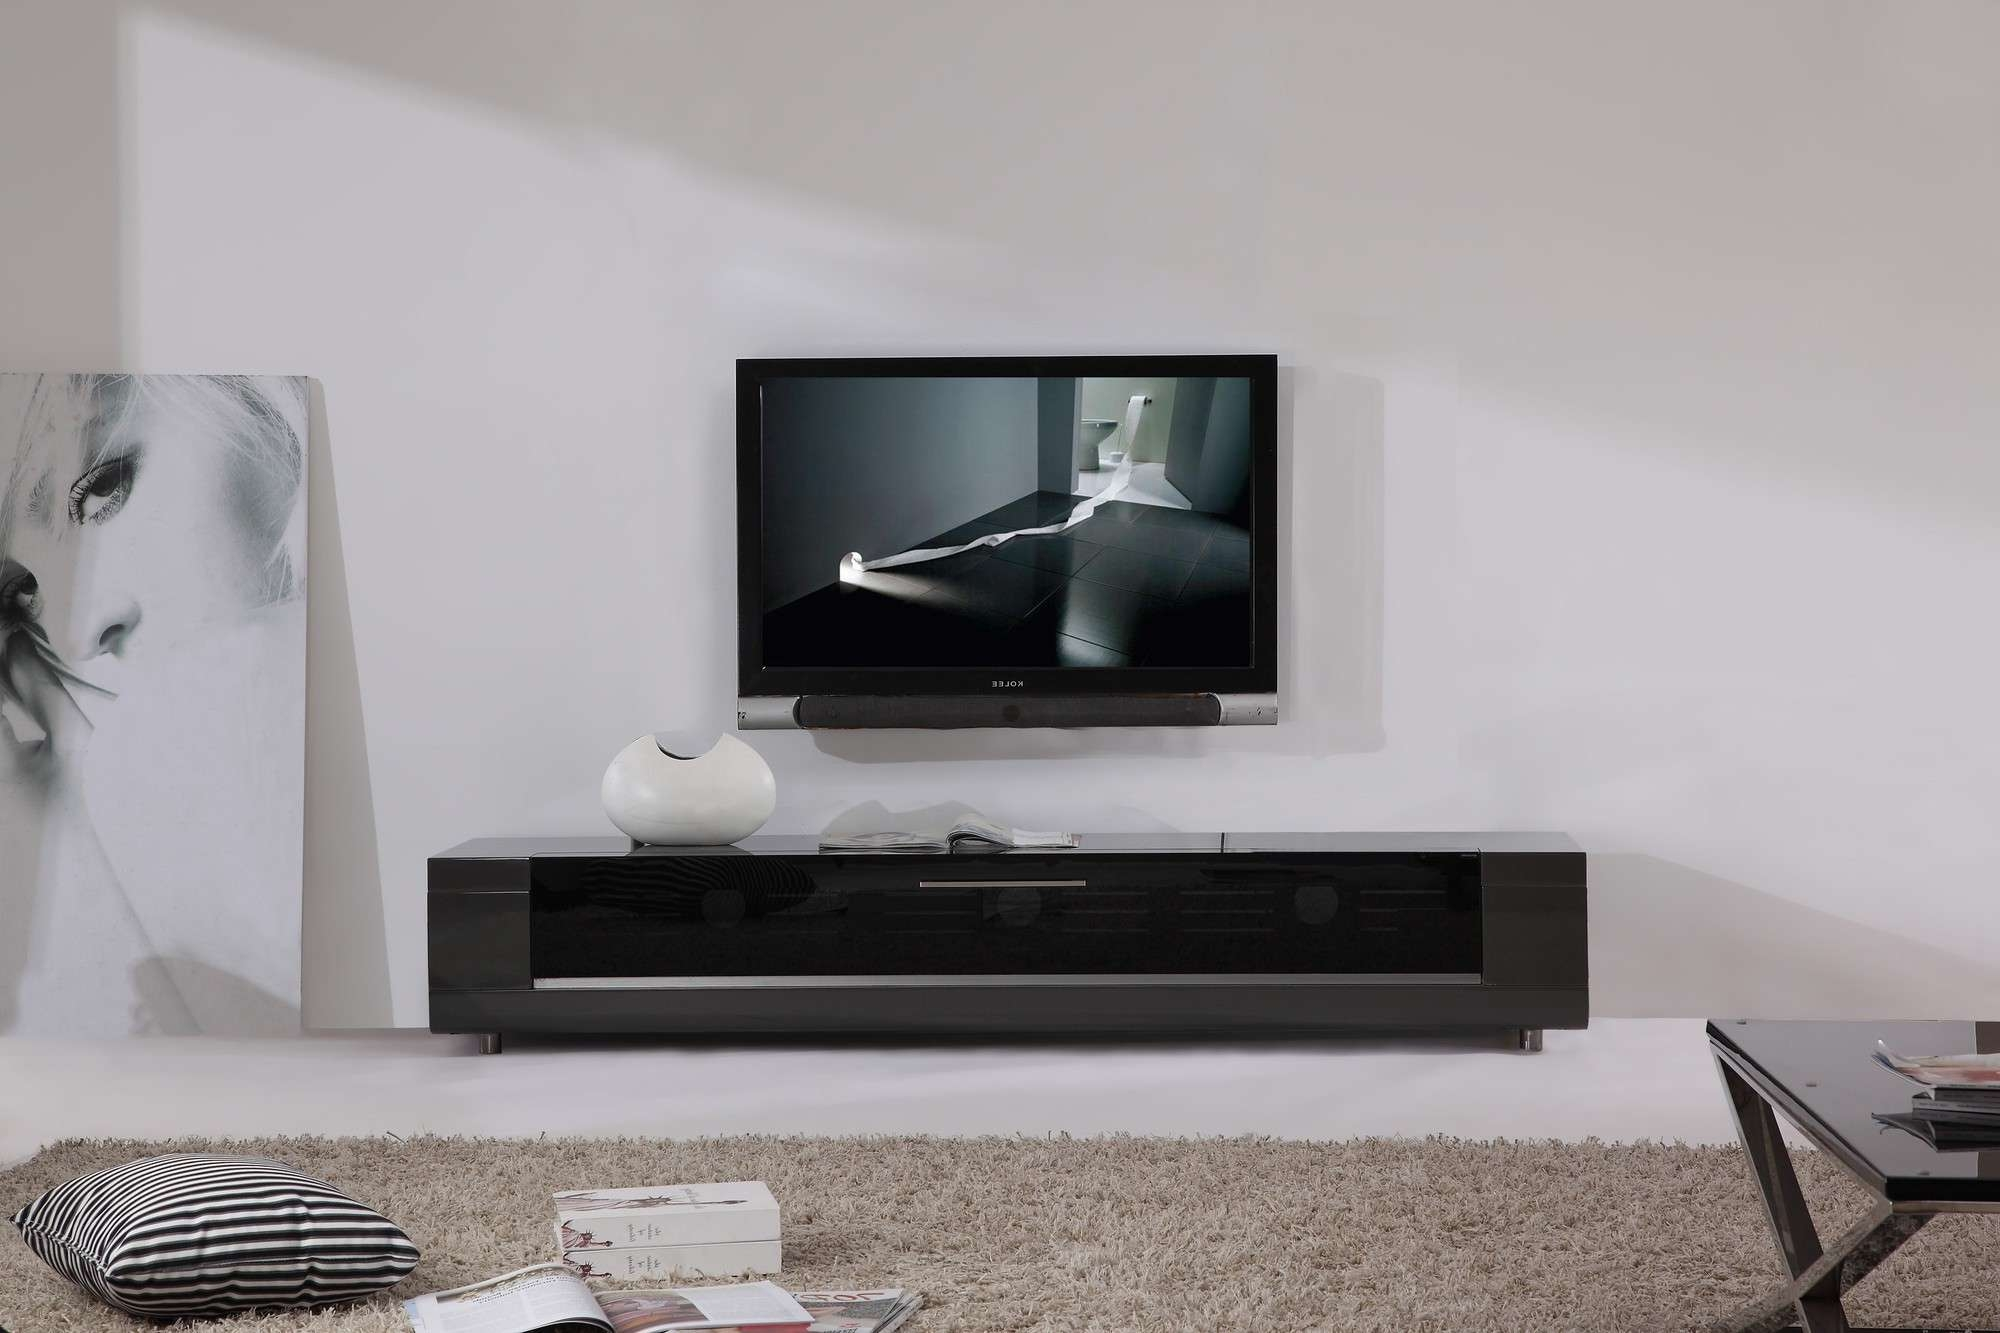 B Modern Editor Remix Tv Stand Modern Furnishings Regarding B Modern Tv Stands (View 6 of 15)